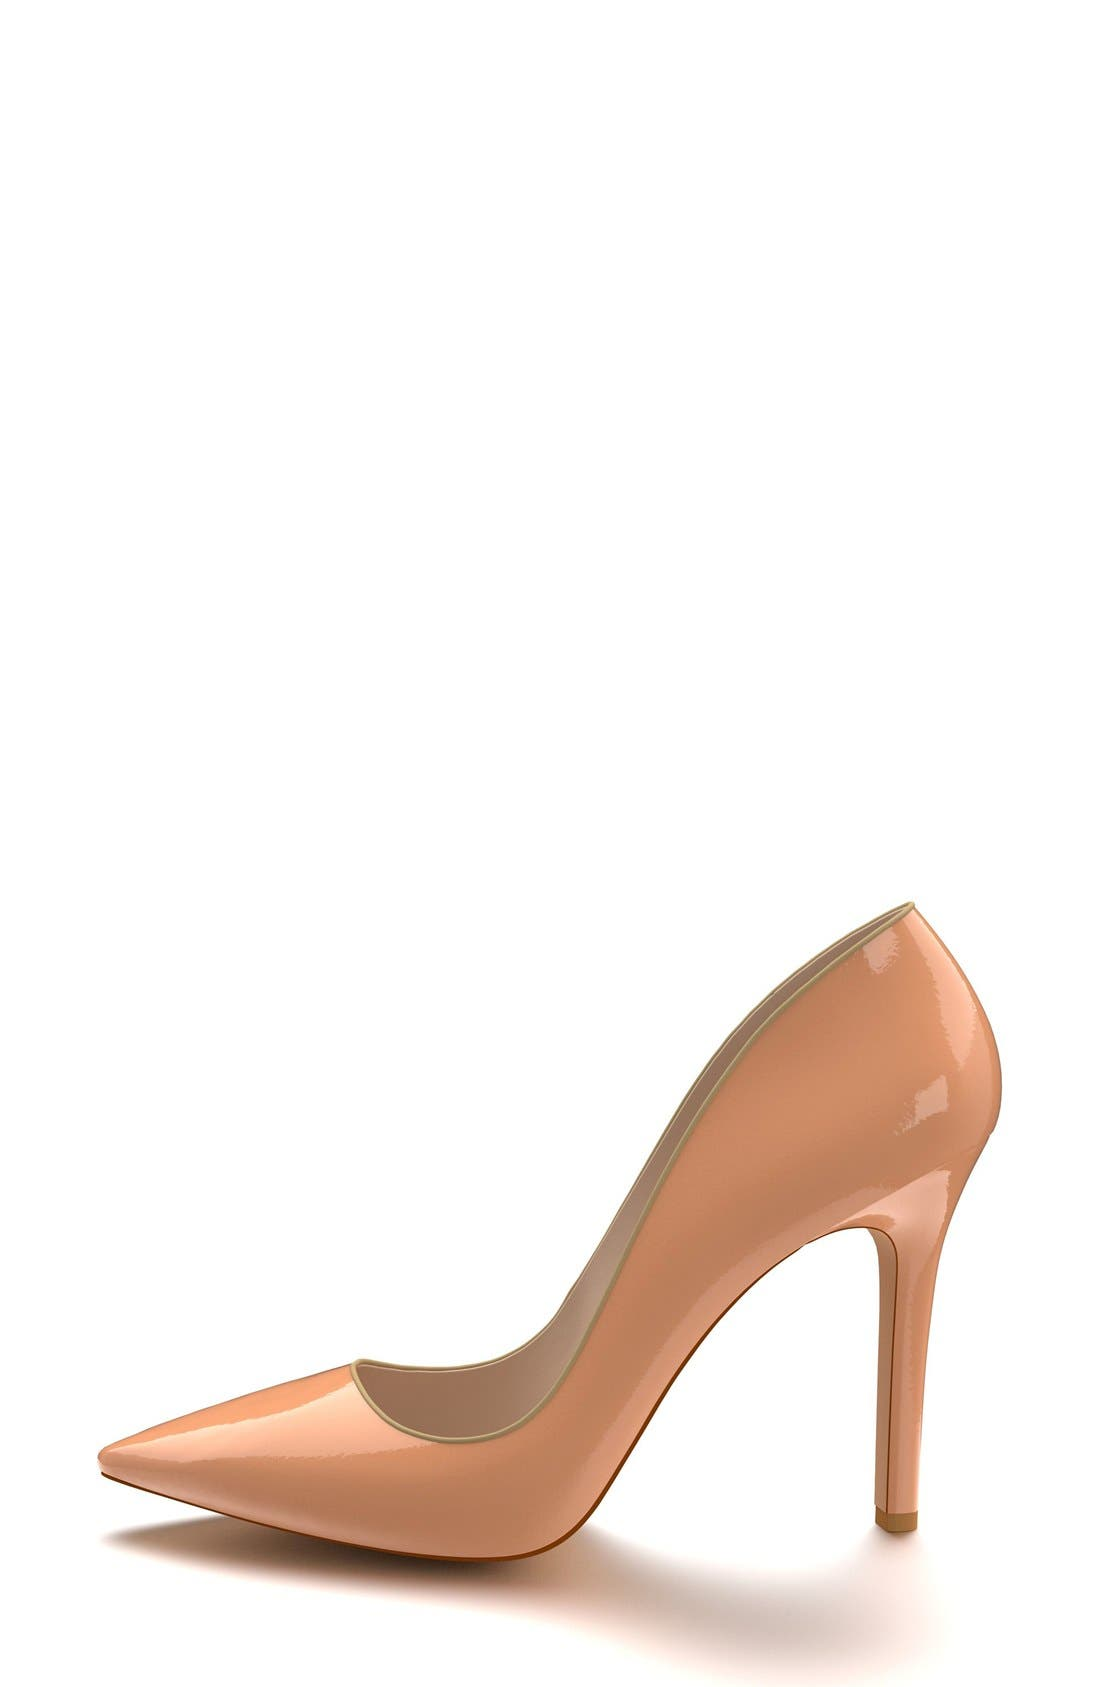 Pointy Toe Pump,                             Alternate thumbnail 4, color,                             250